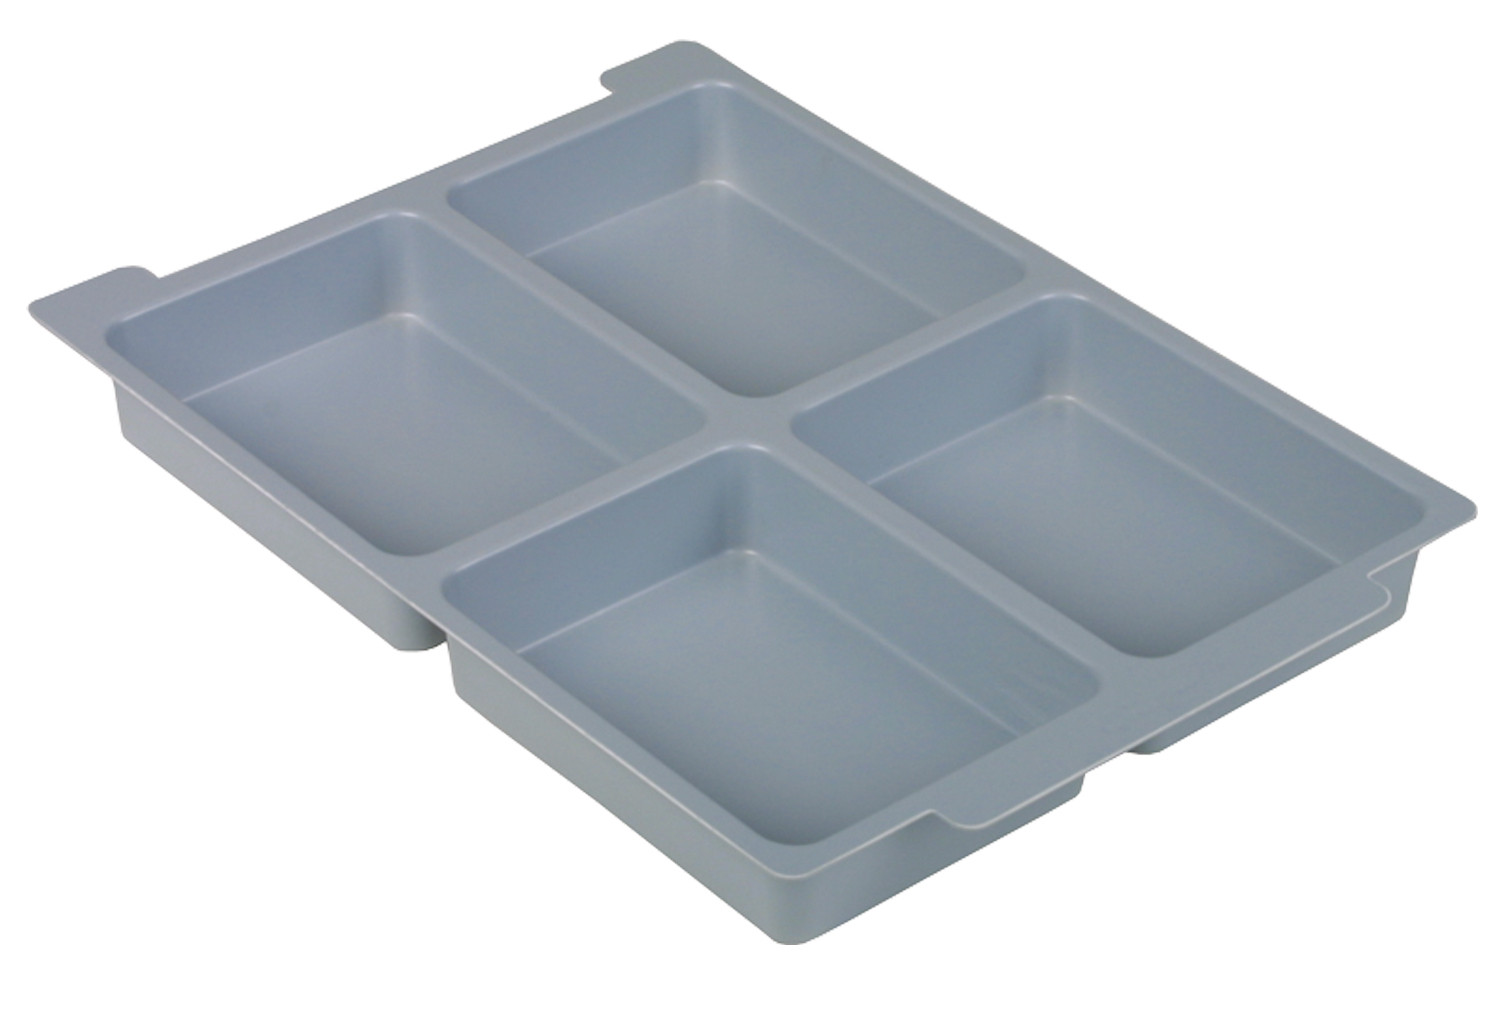 Pack of 6 Dividers For Gratnell Shallow Trays (4 Compartments)